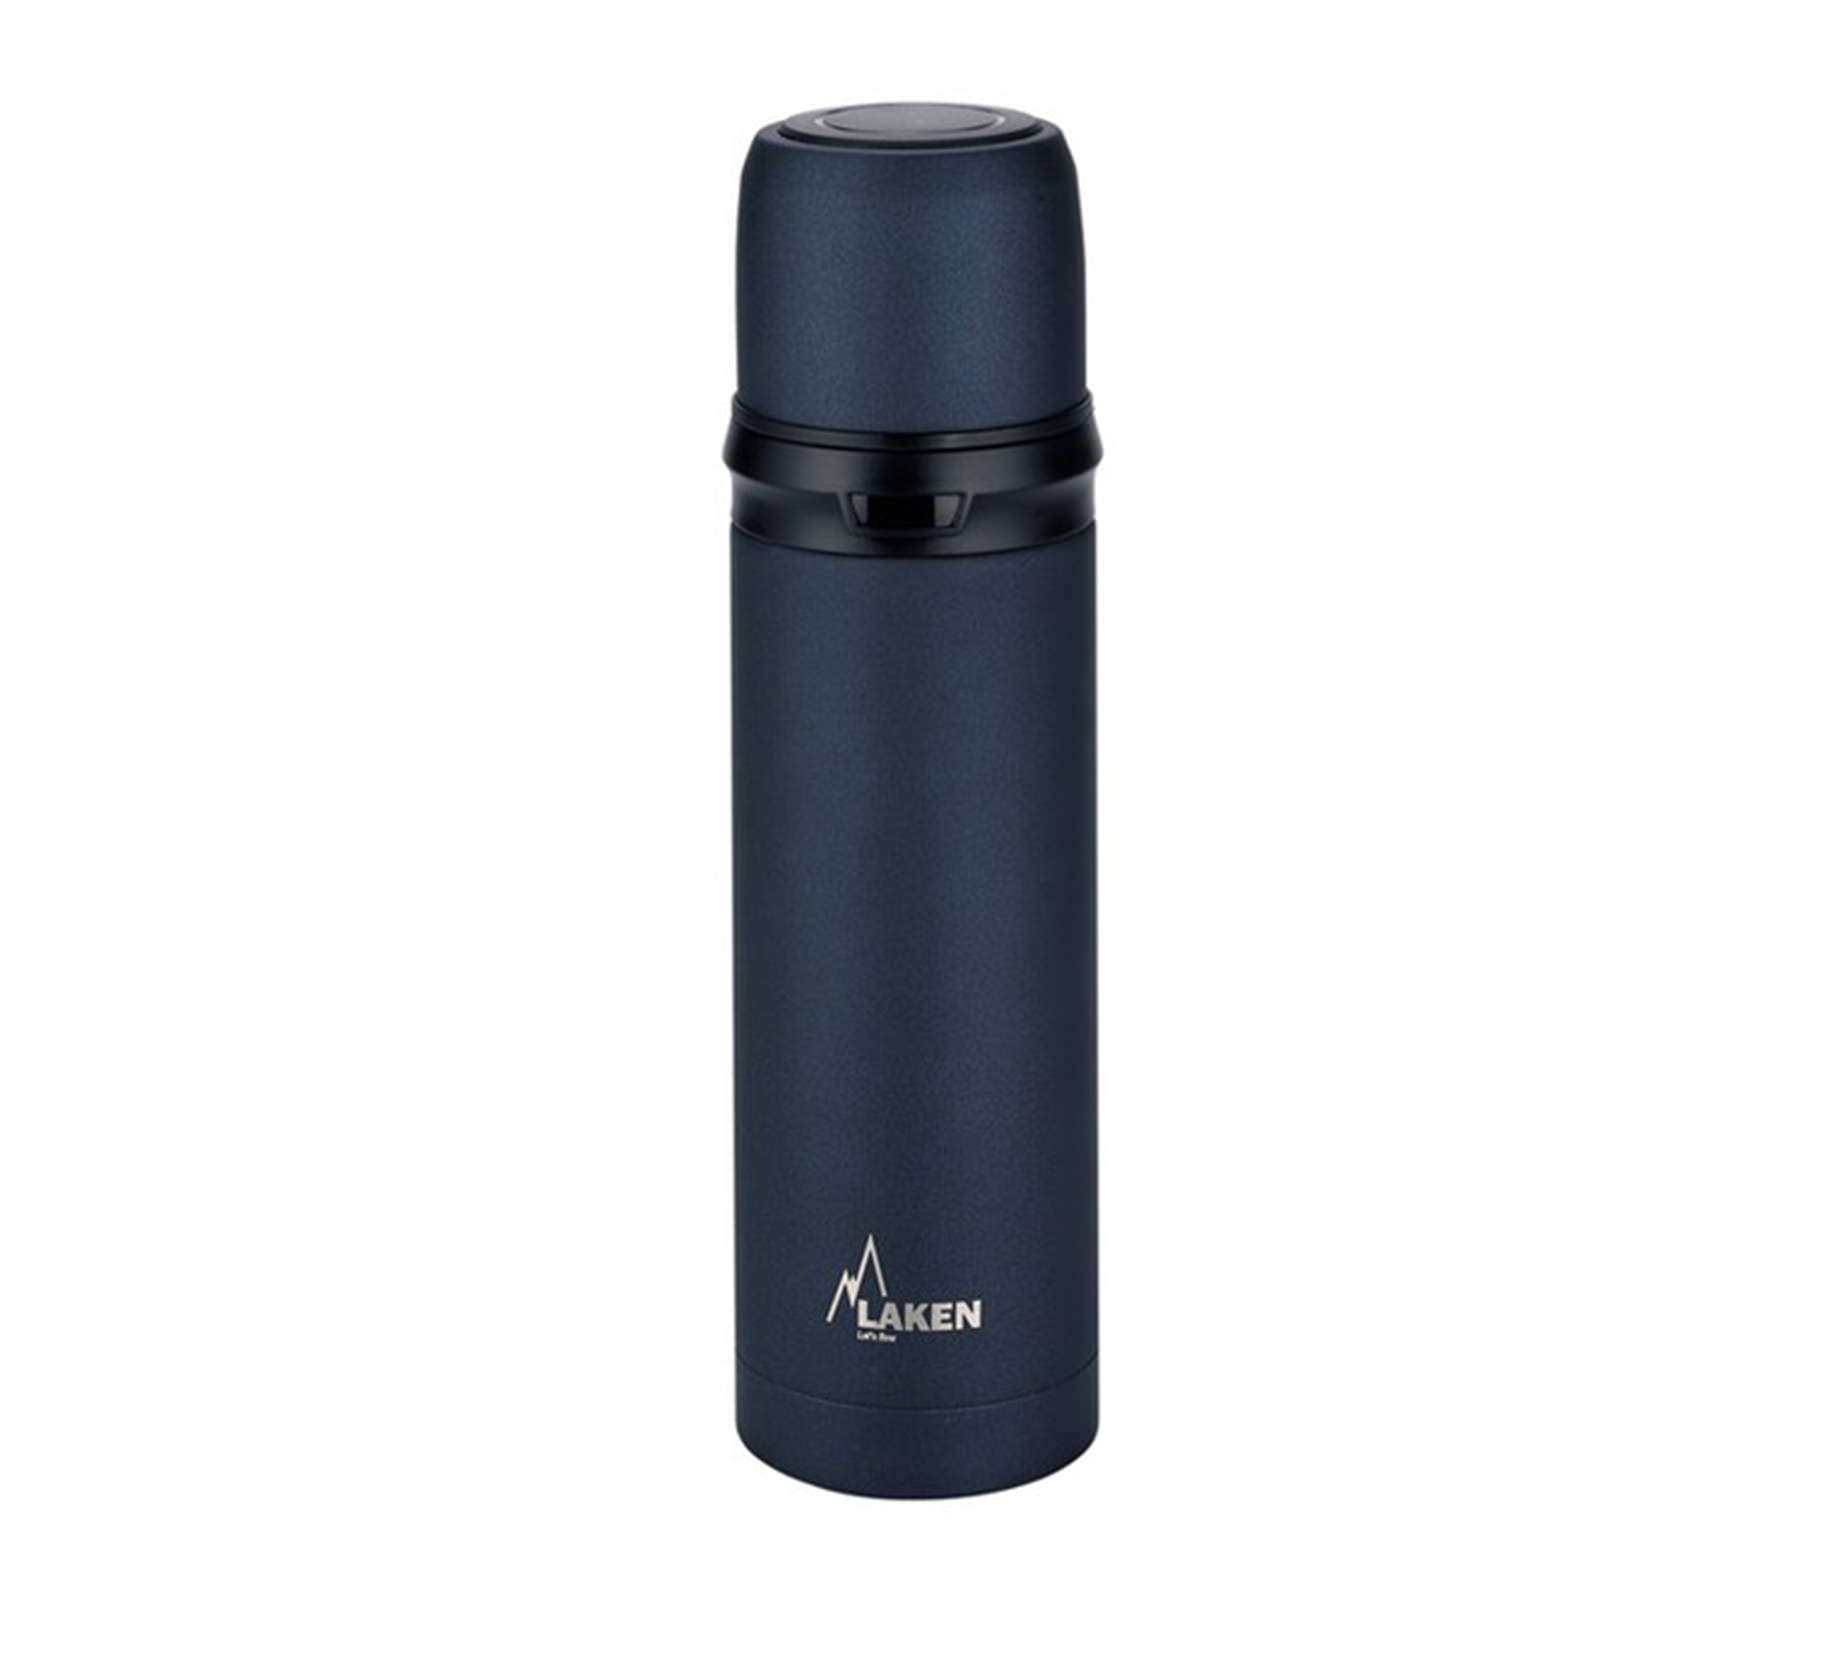 Bình giữ nhiệt LAKEN Thermo Beverages 750ml - Đen